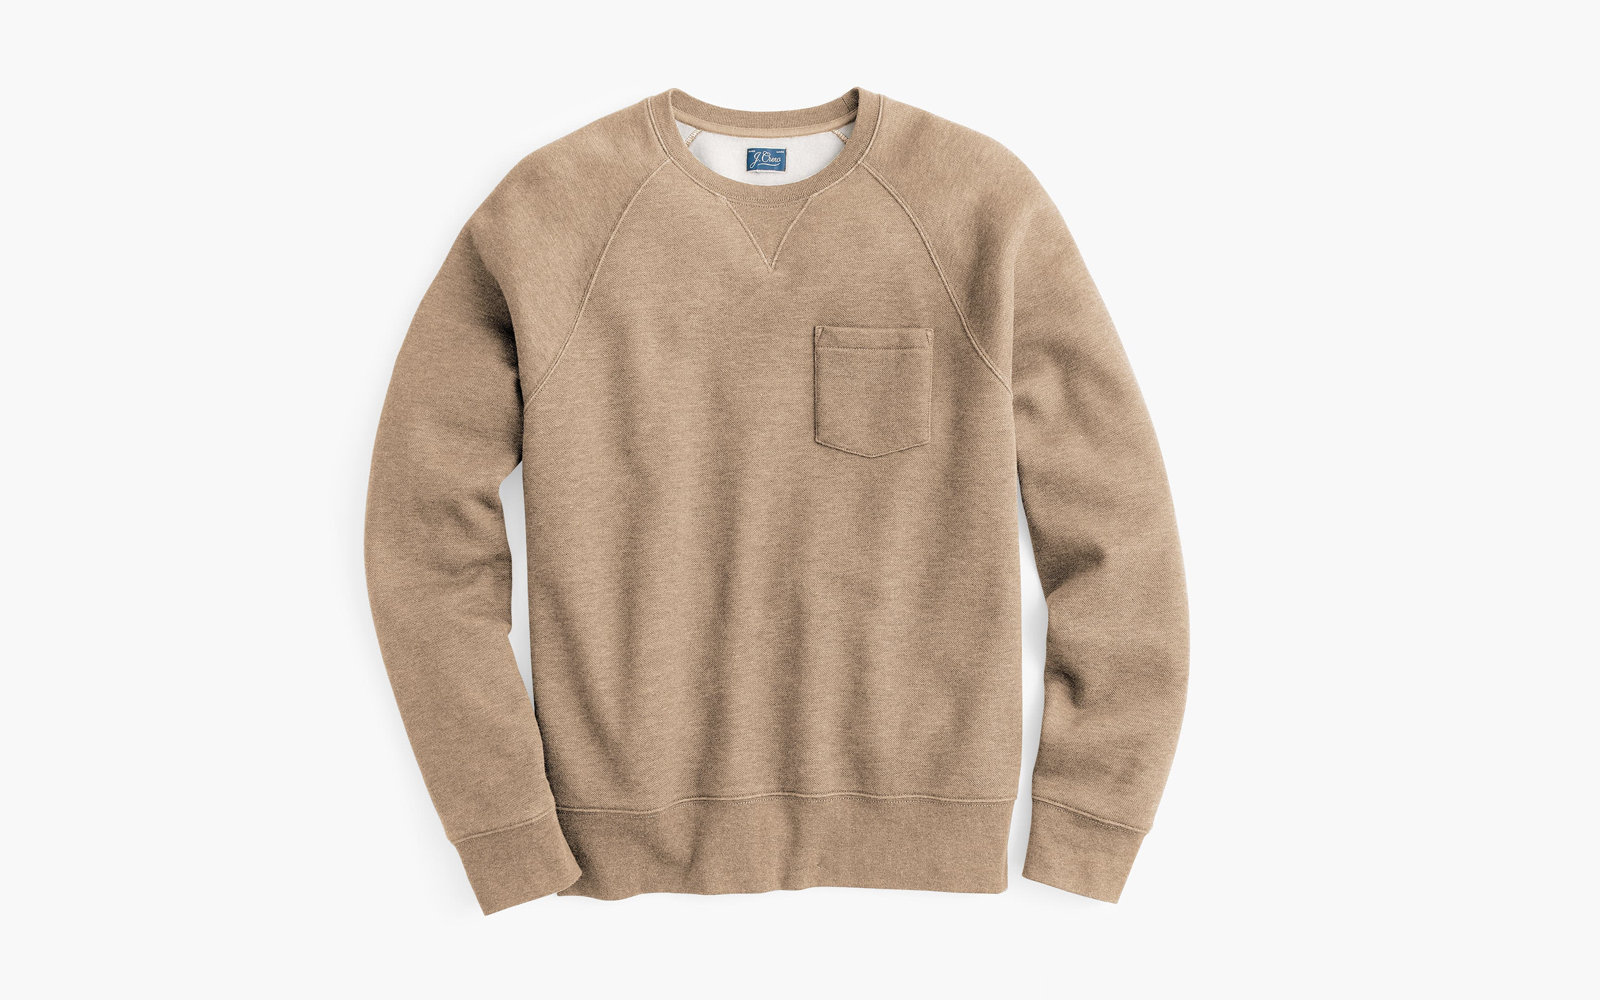 Men's Textured Crewneck